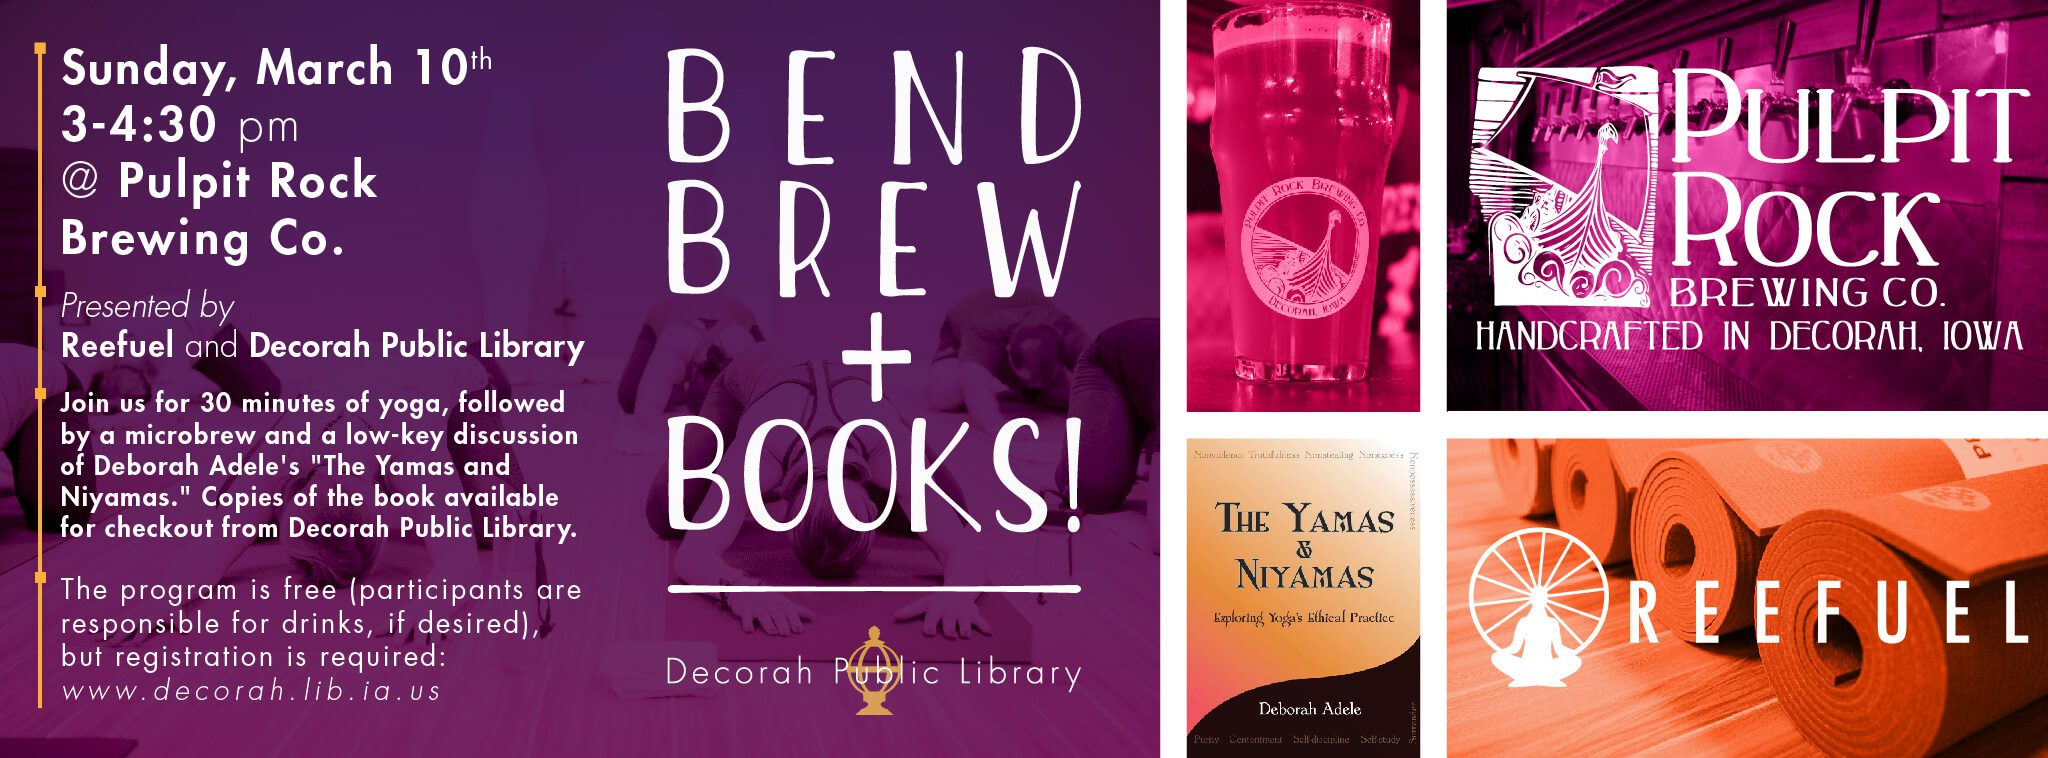 Bend Brew and Books